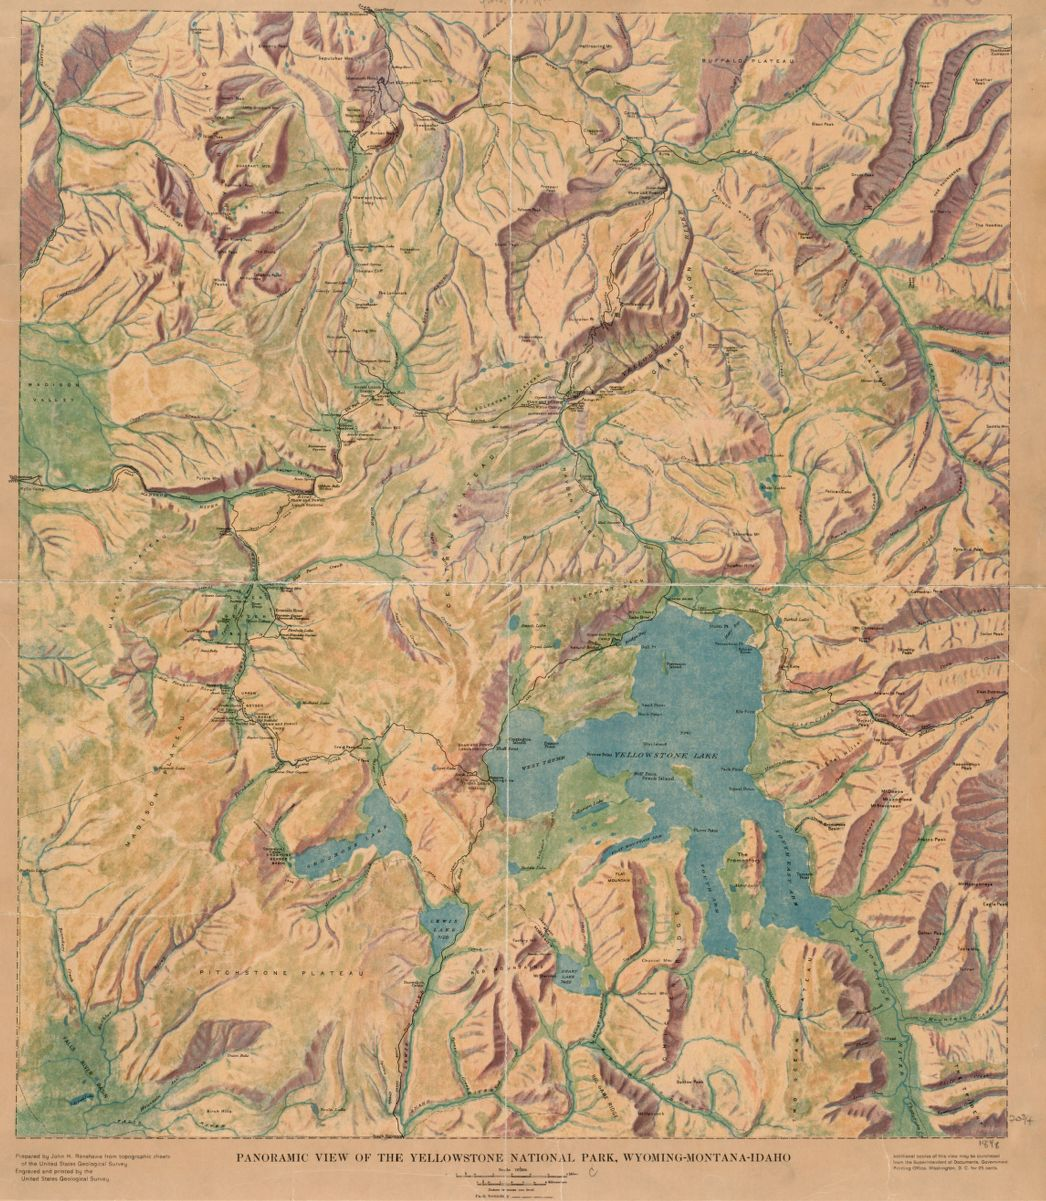 This beautiful relief map is of Yellowstone National Park in Wyoming, the nation's first established national park.